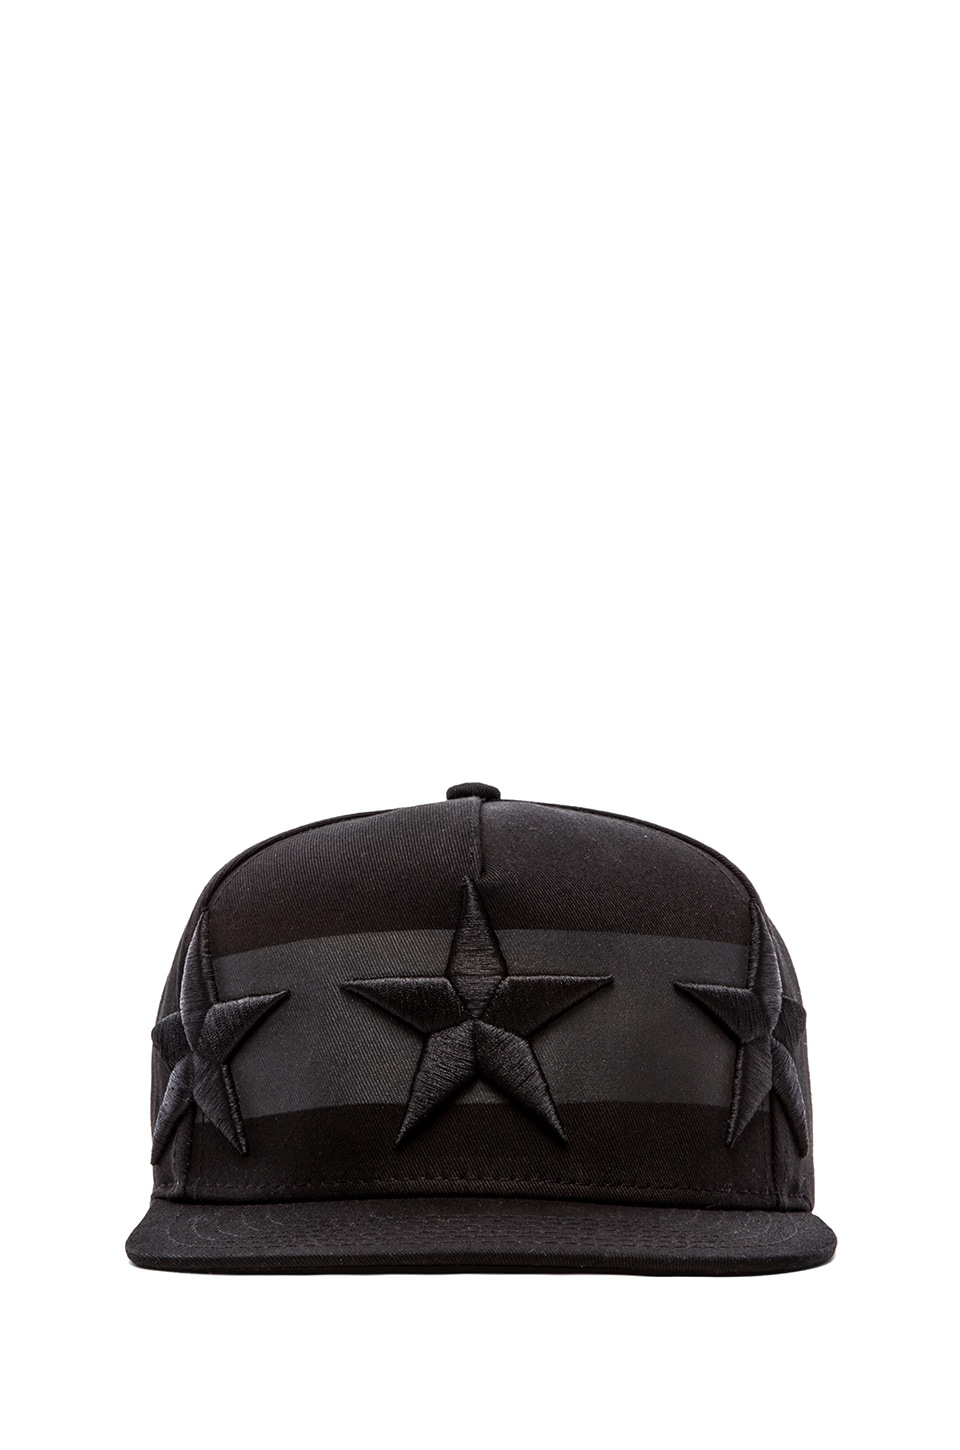 Stampd 3 Star Hat in Black